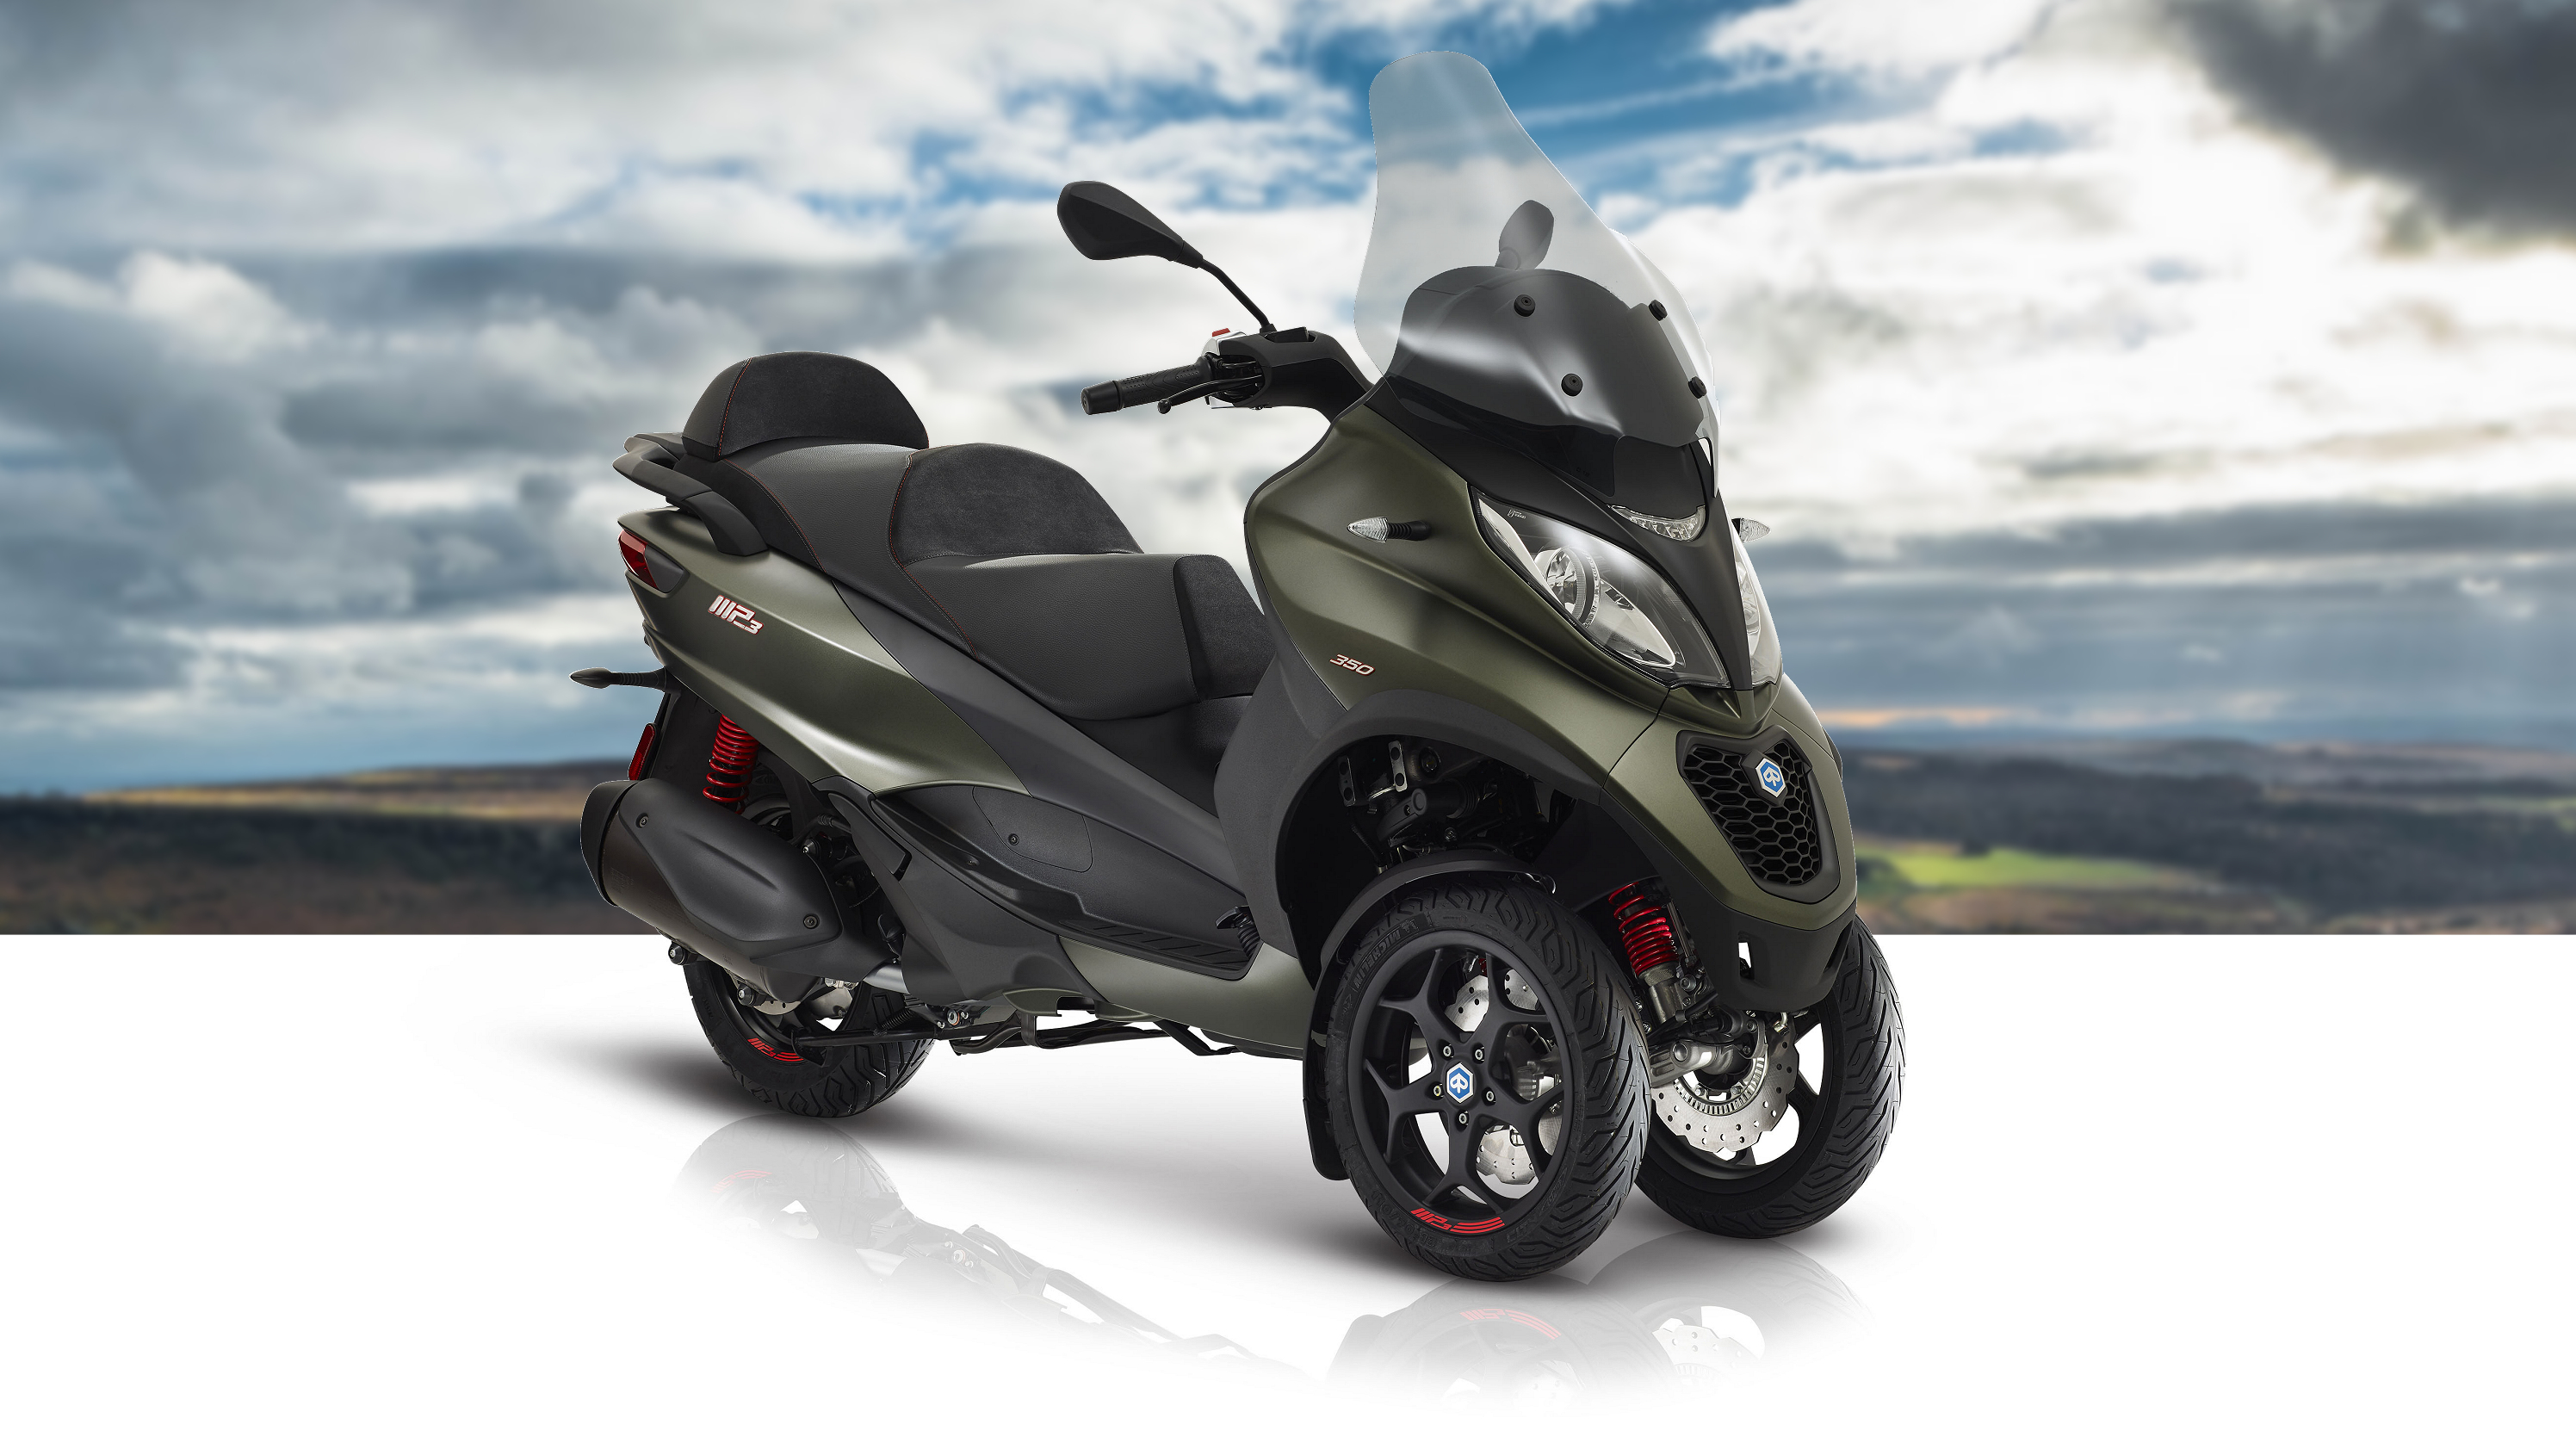 2018 Piaggio MP3 350 Pictures, Photos, Wallpapers.